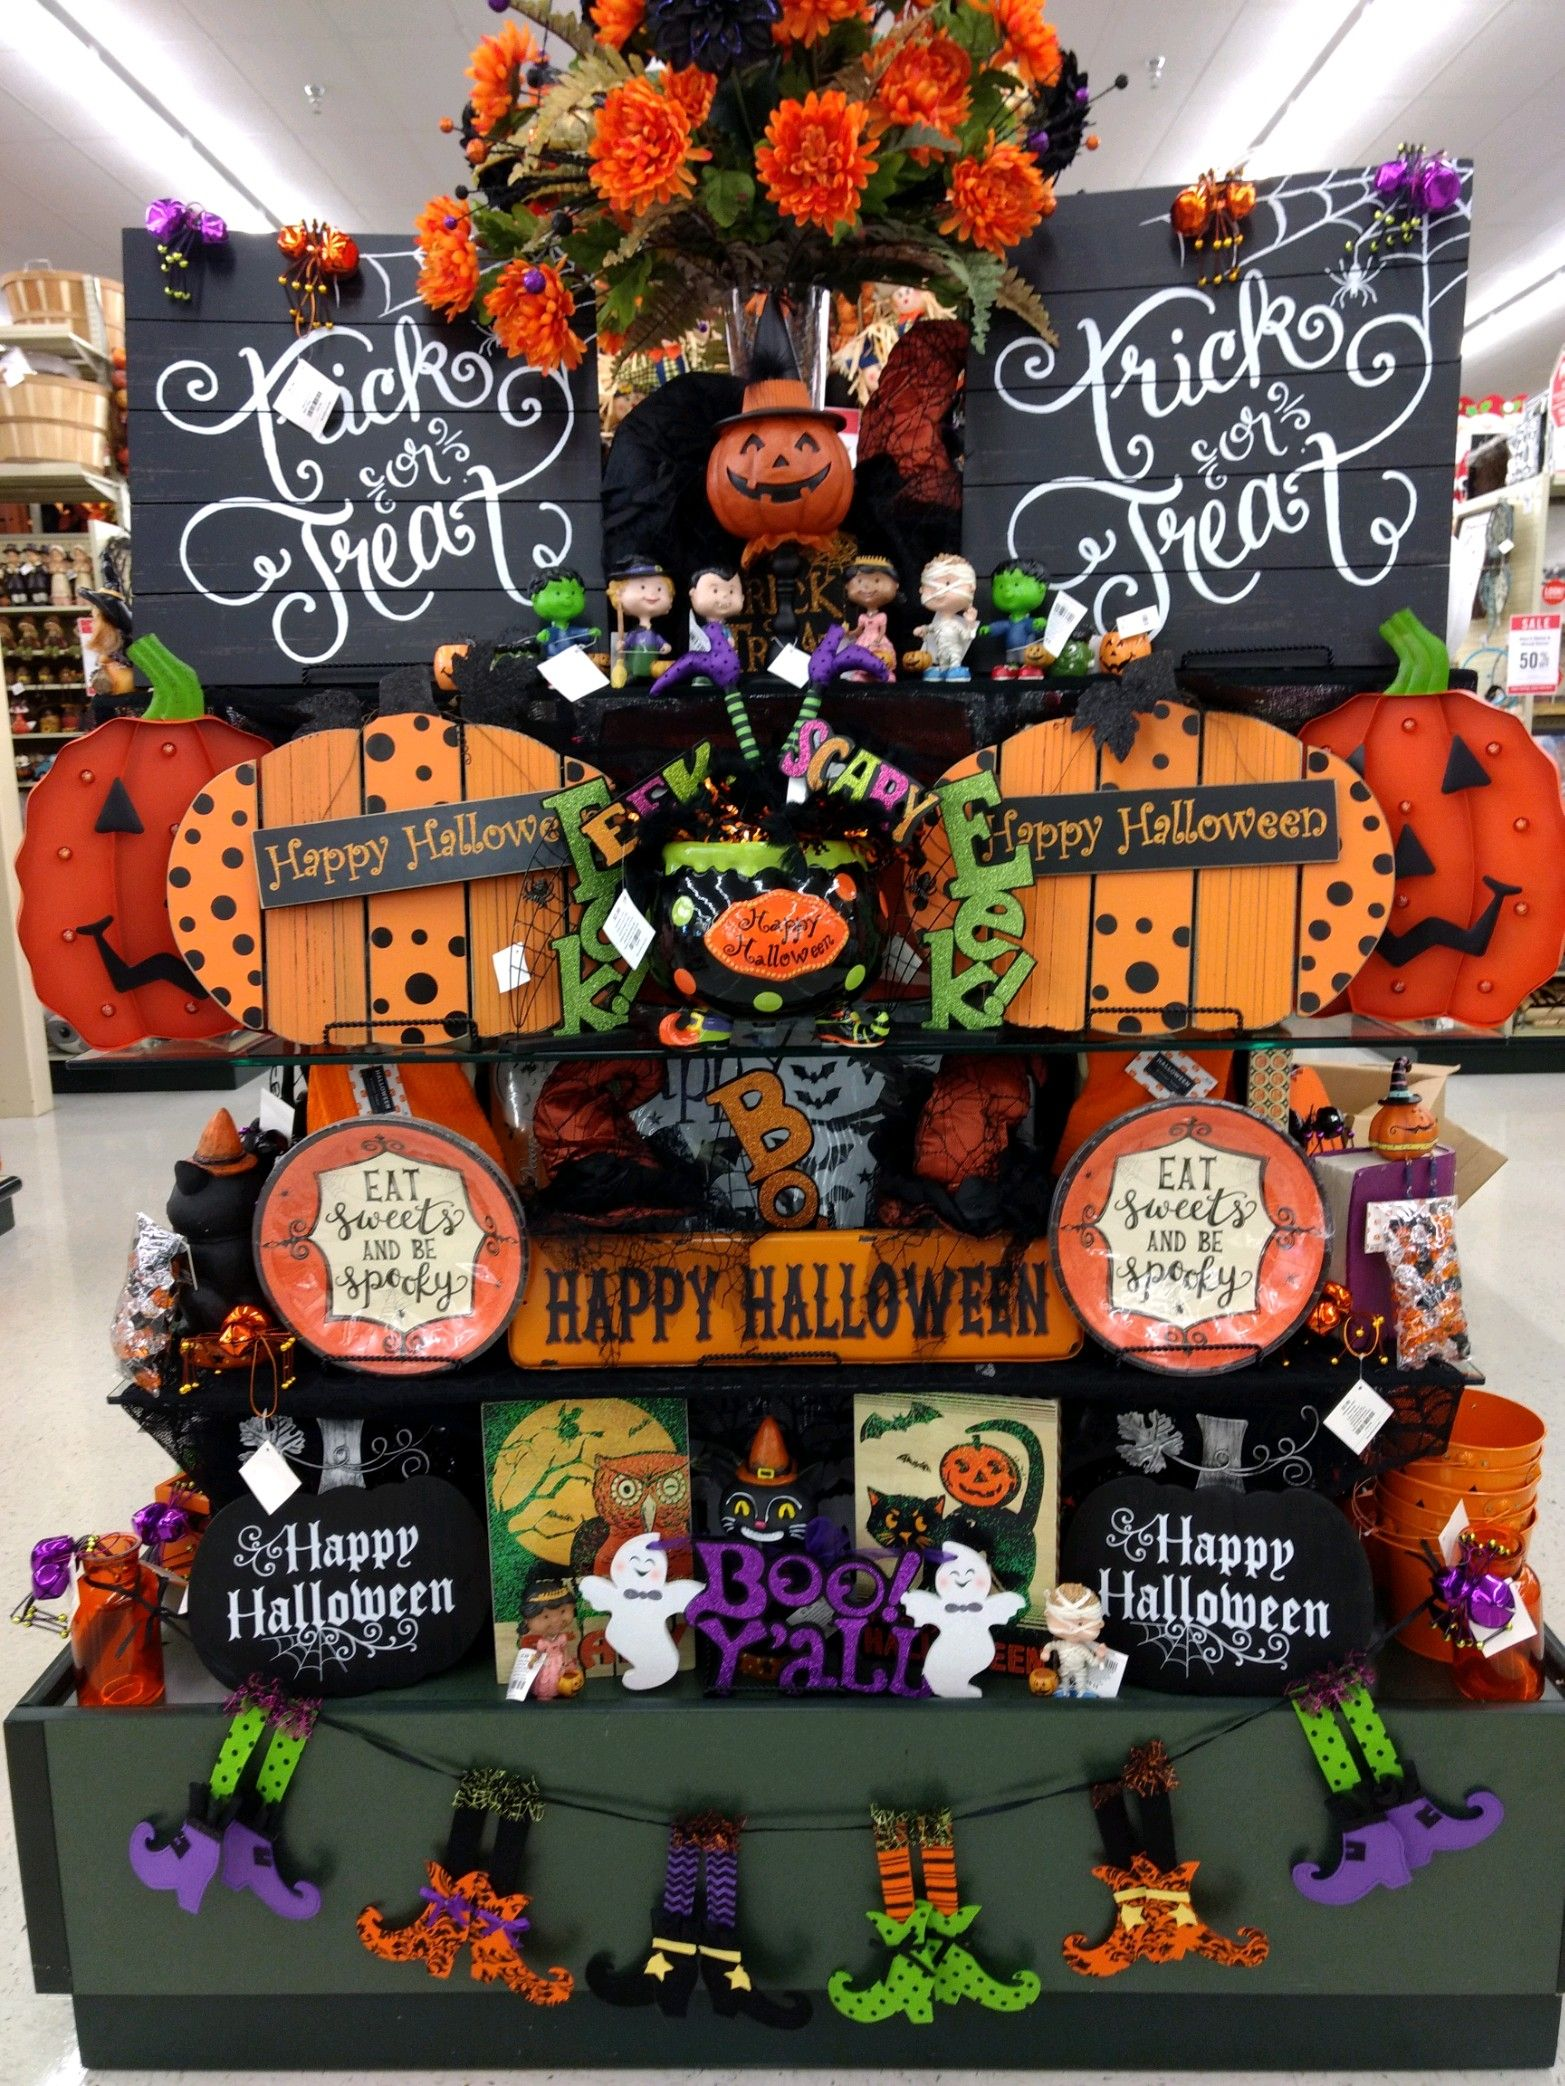 Hobby Lobby Halloween Decorations 2019.Hobby Lobby Halloween Door Hanger Halloween Halloween